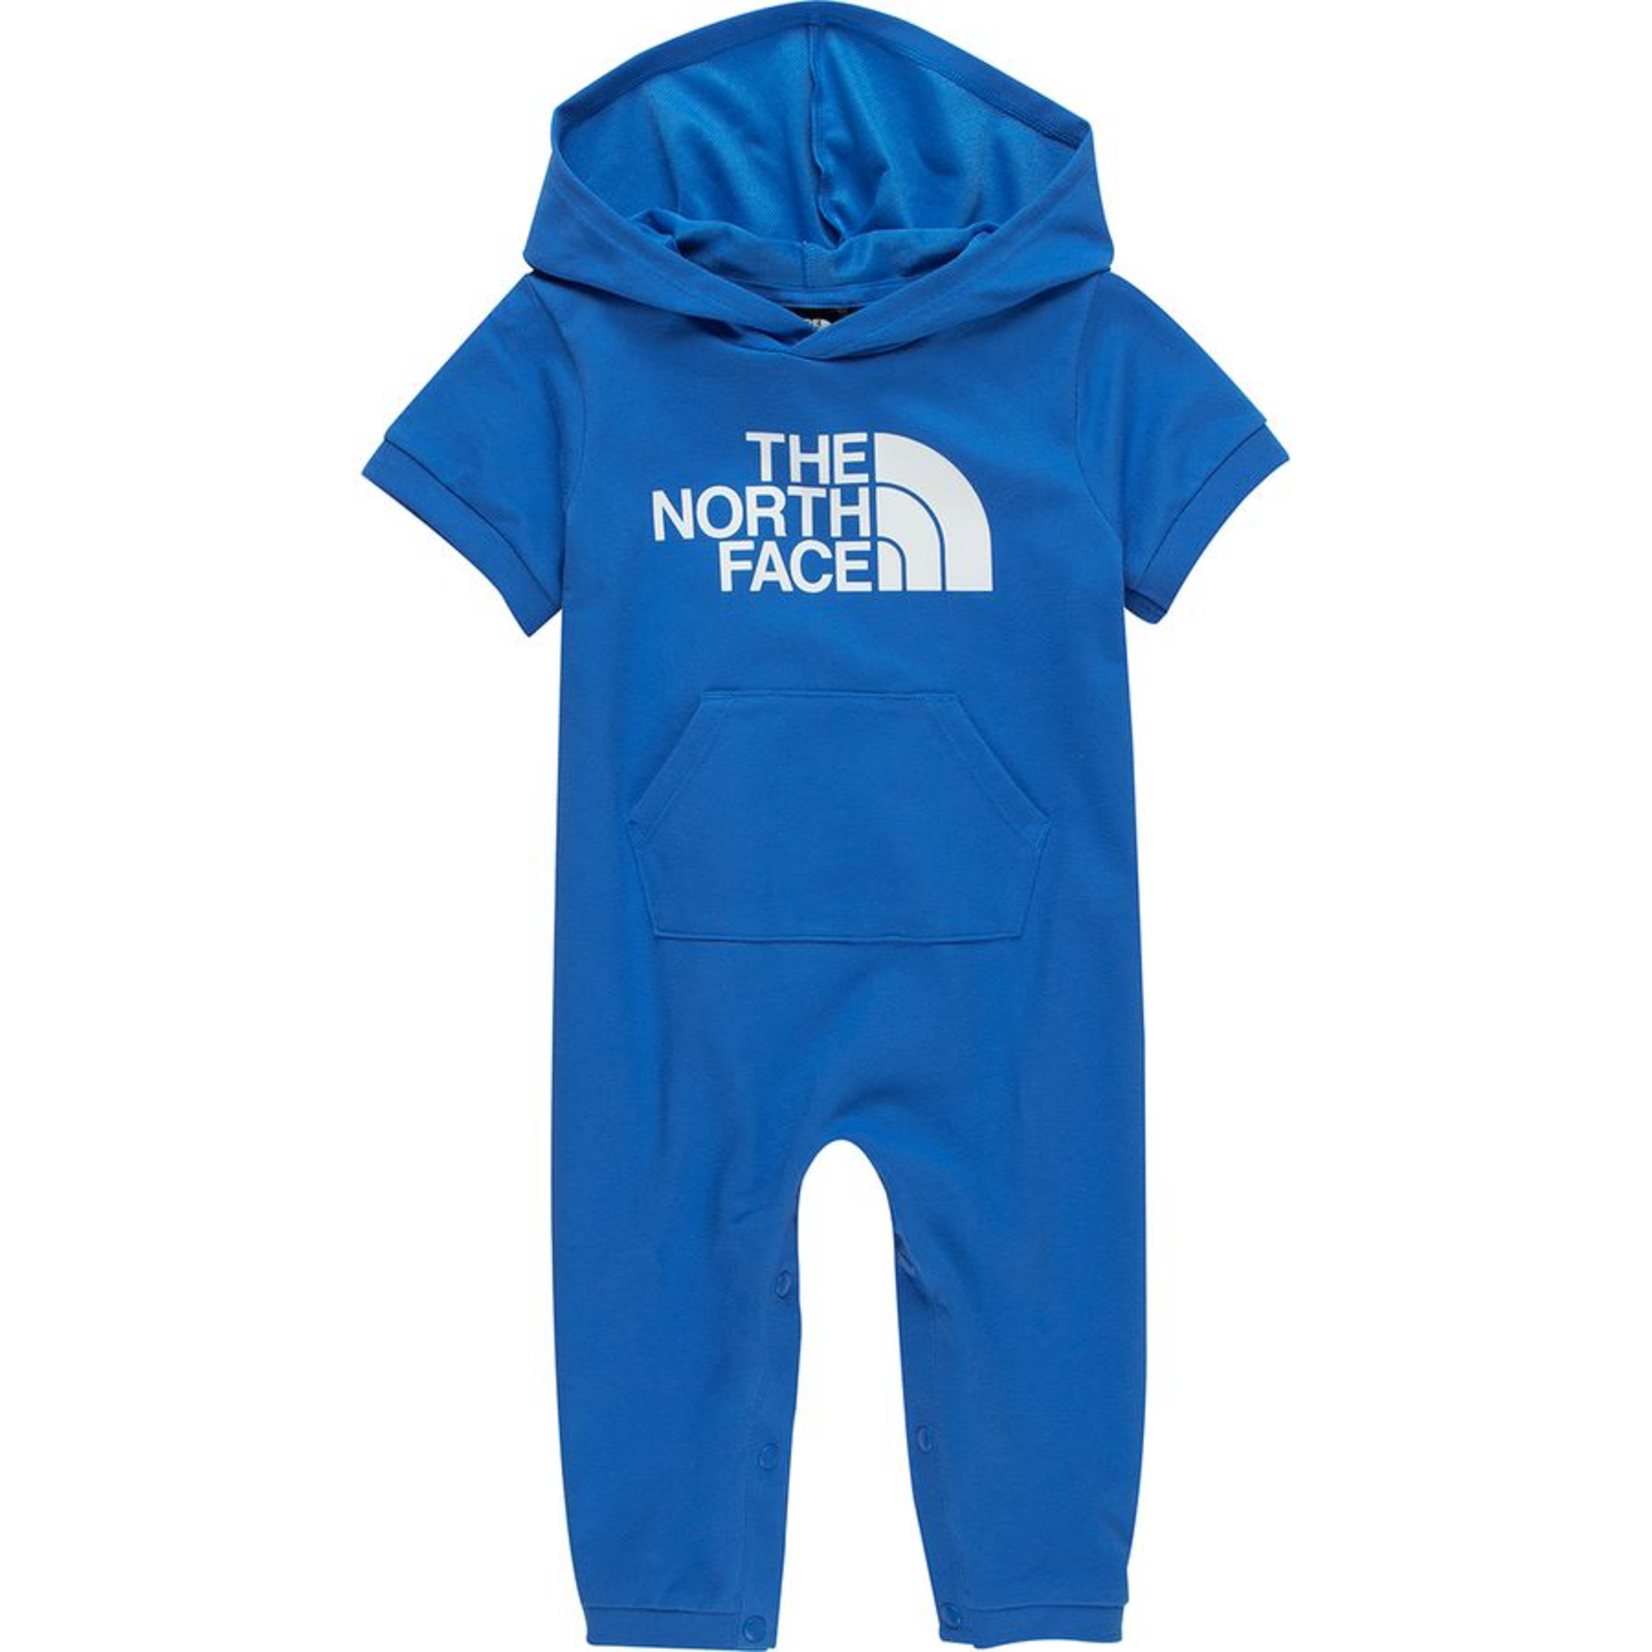 INFANT FRENCH TERRY HOODED ONESIE